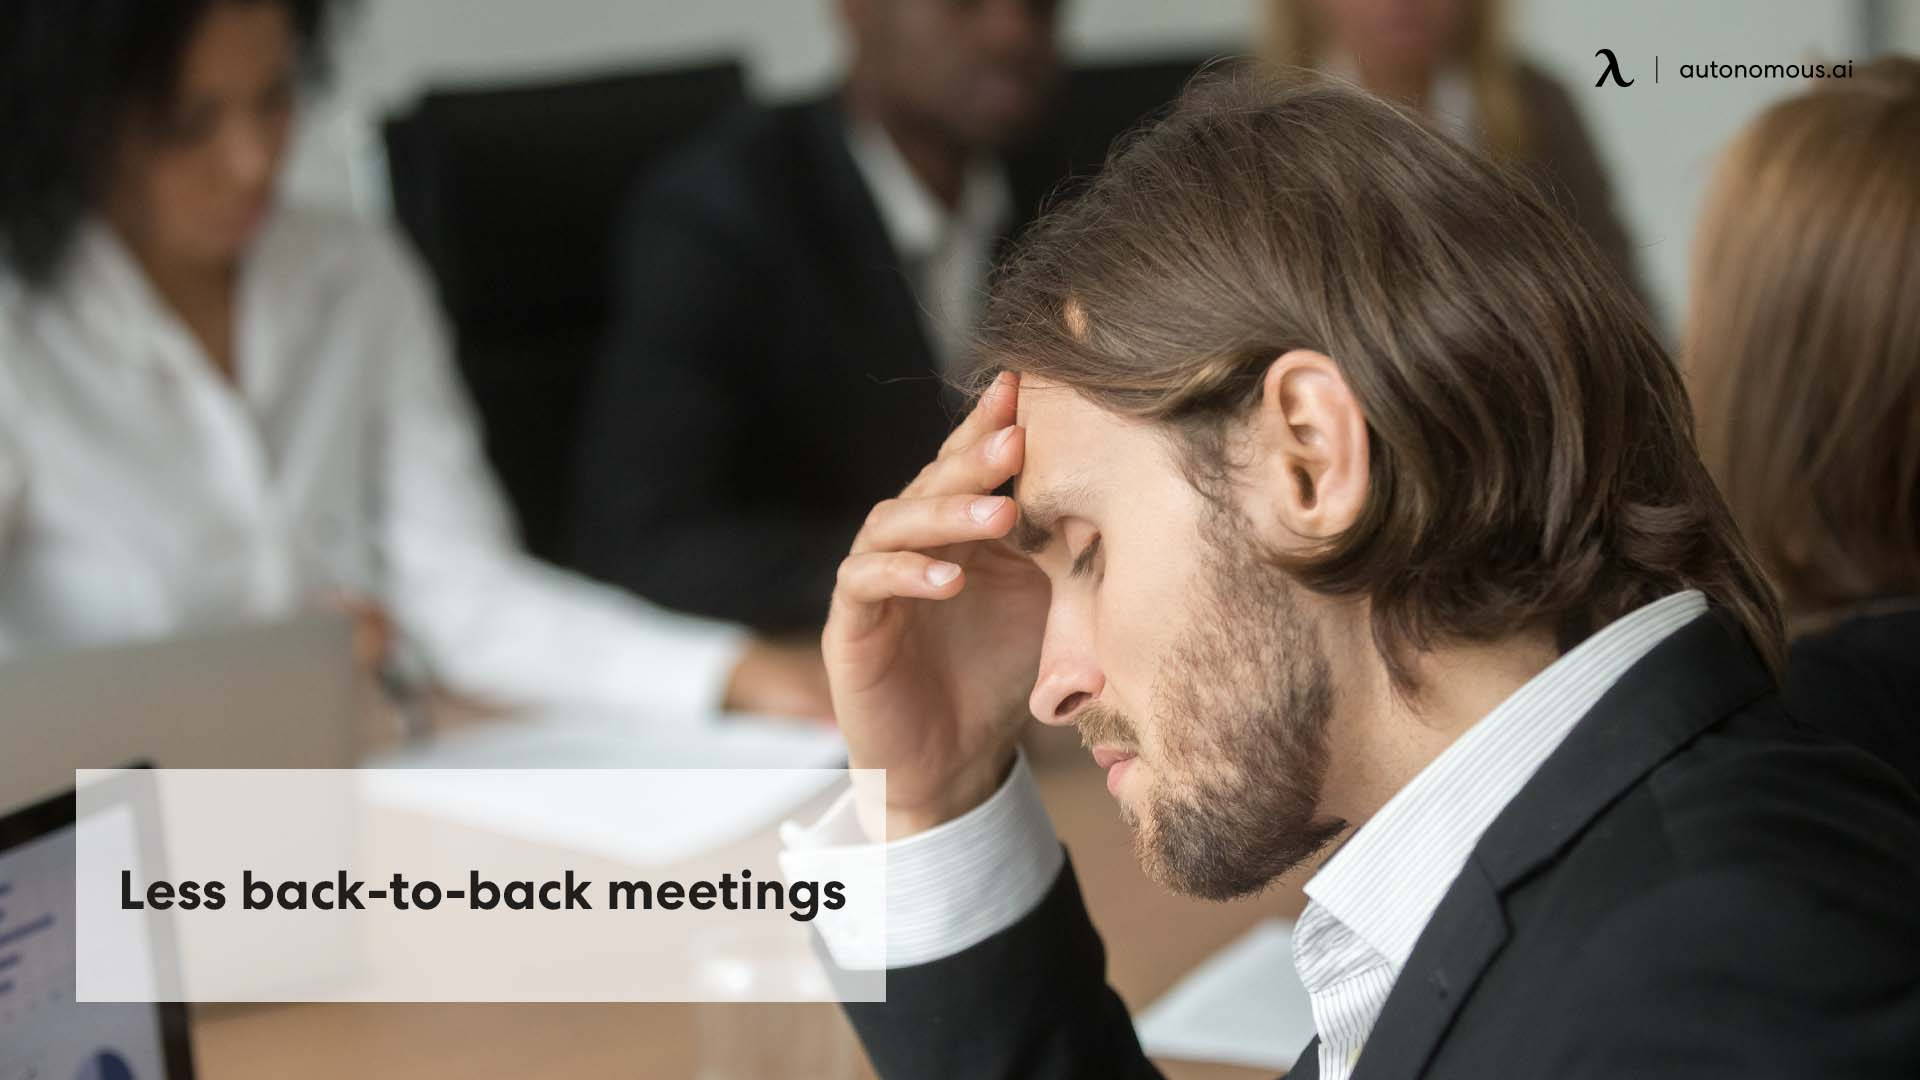 Less back-to-back meetings